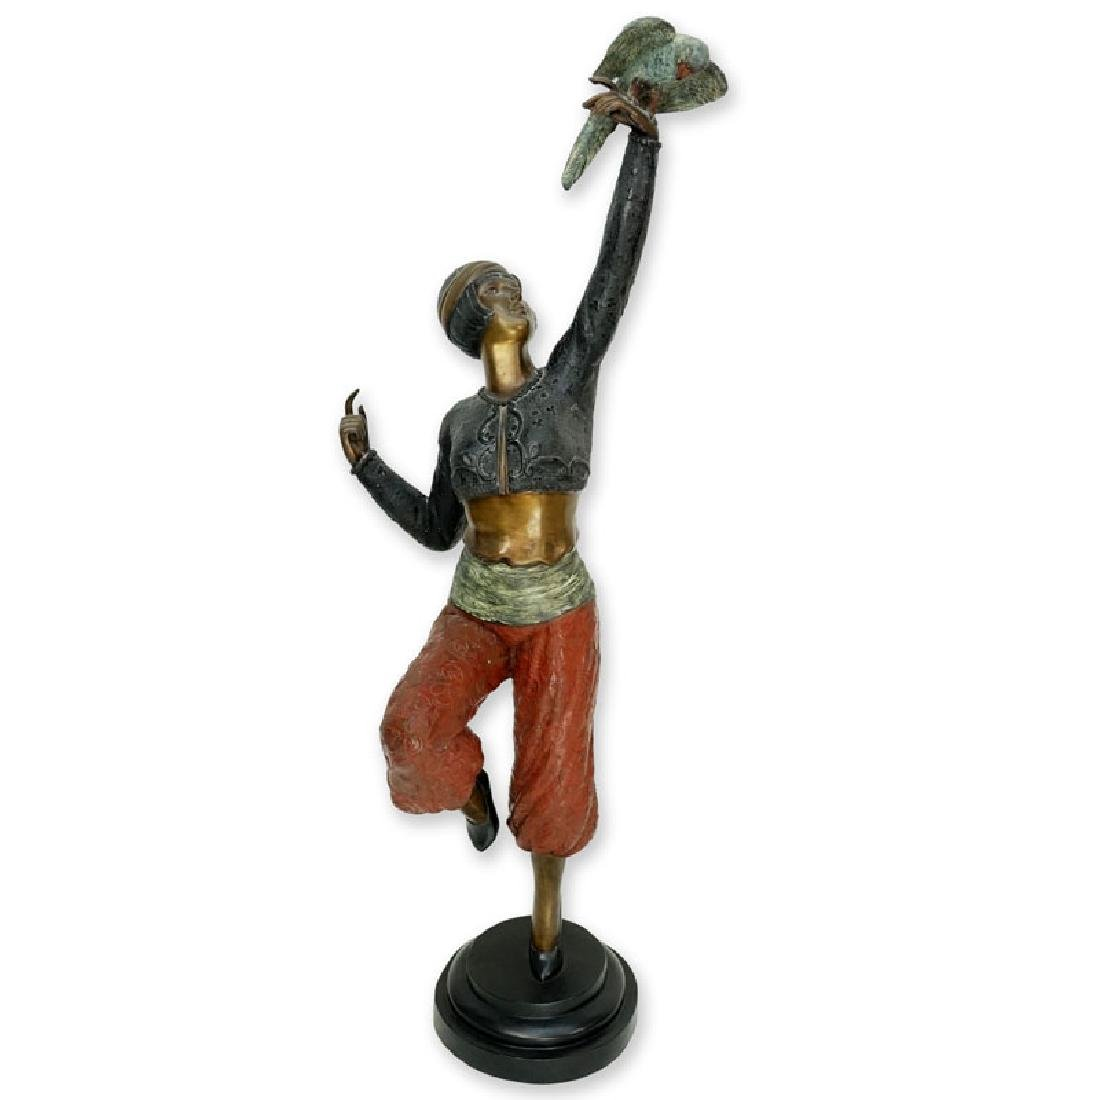 Large Art Deco style Patinated Bronze Sculpture, Dancer